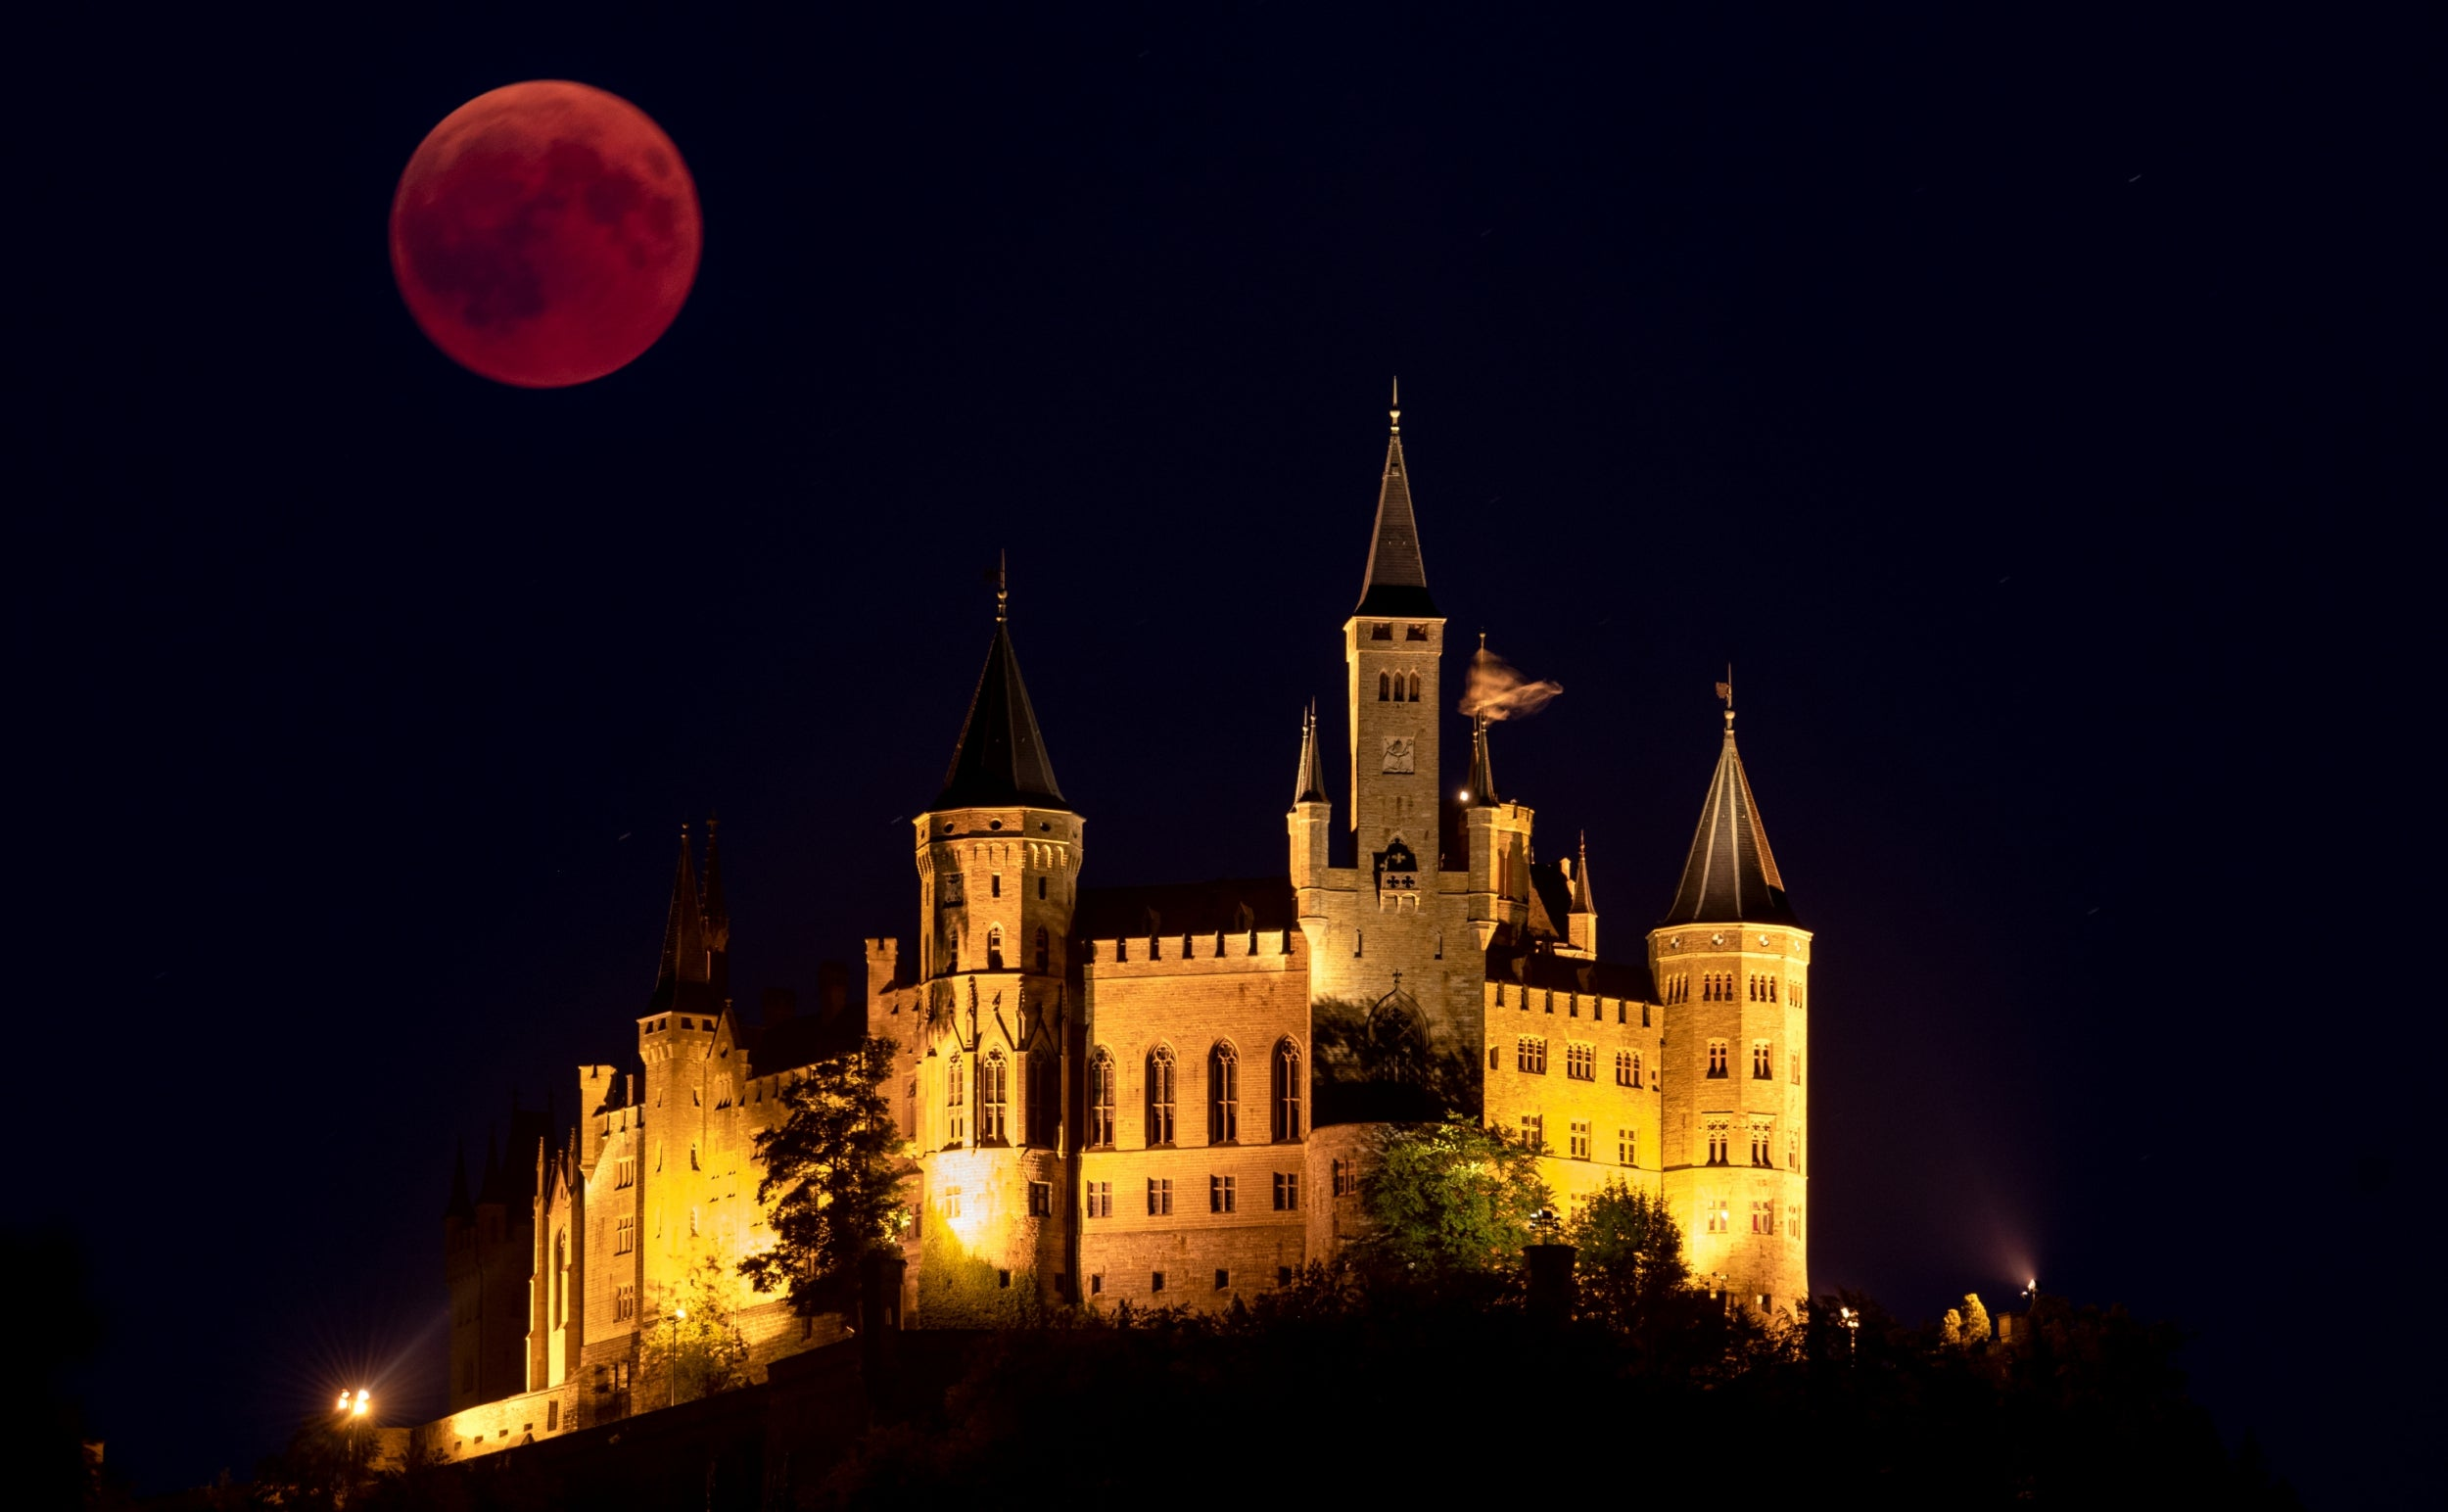 Lunar Eclipse Blood Moon Myths From Around The World The Independent